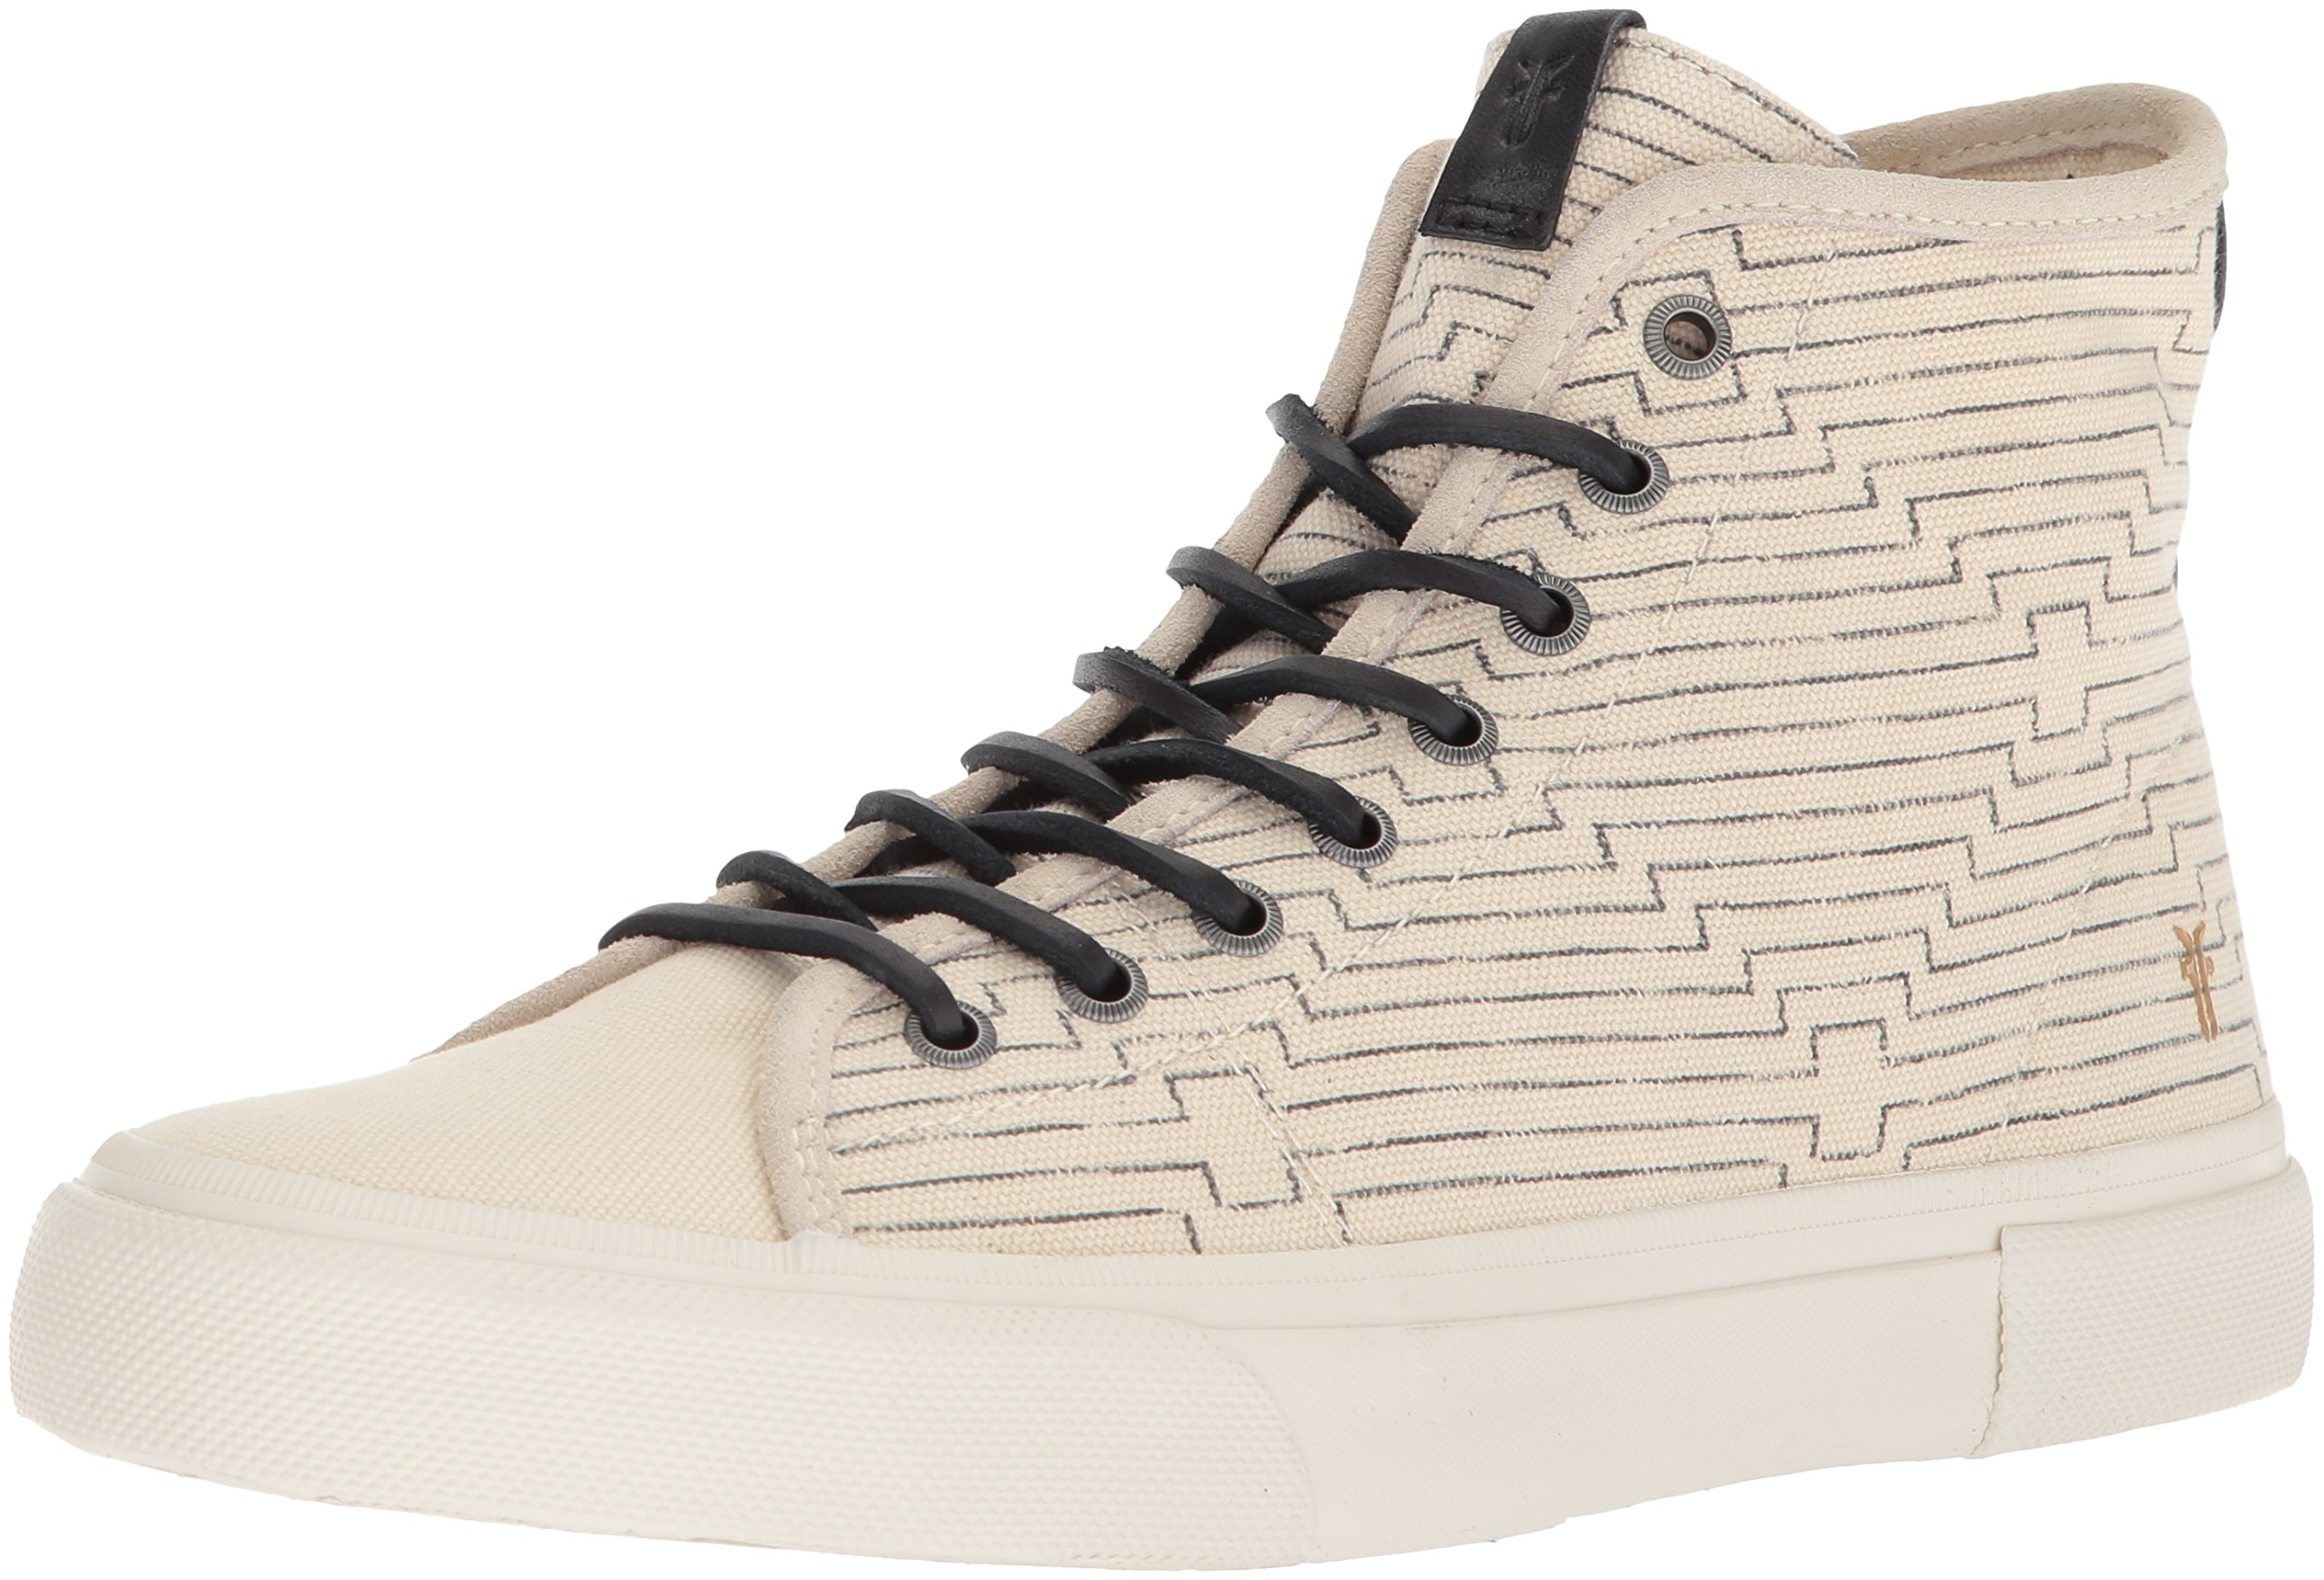 FRYE Men's Ludlow High Canvas Print Sneaker, Off White, 8.5 Medium US by FRYE (Image #1)